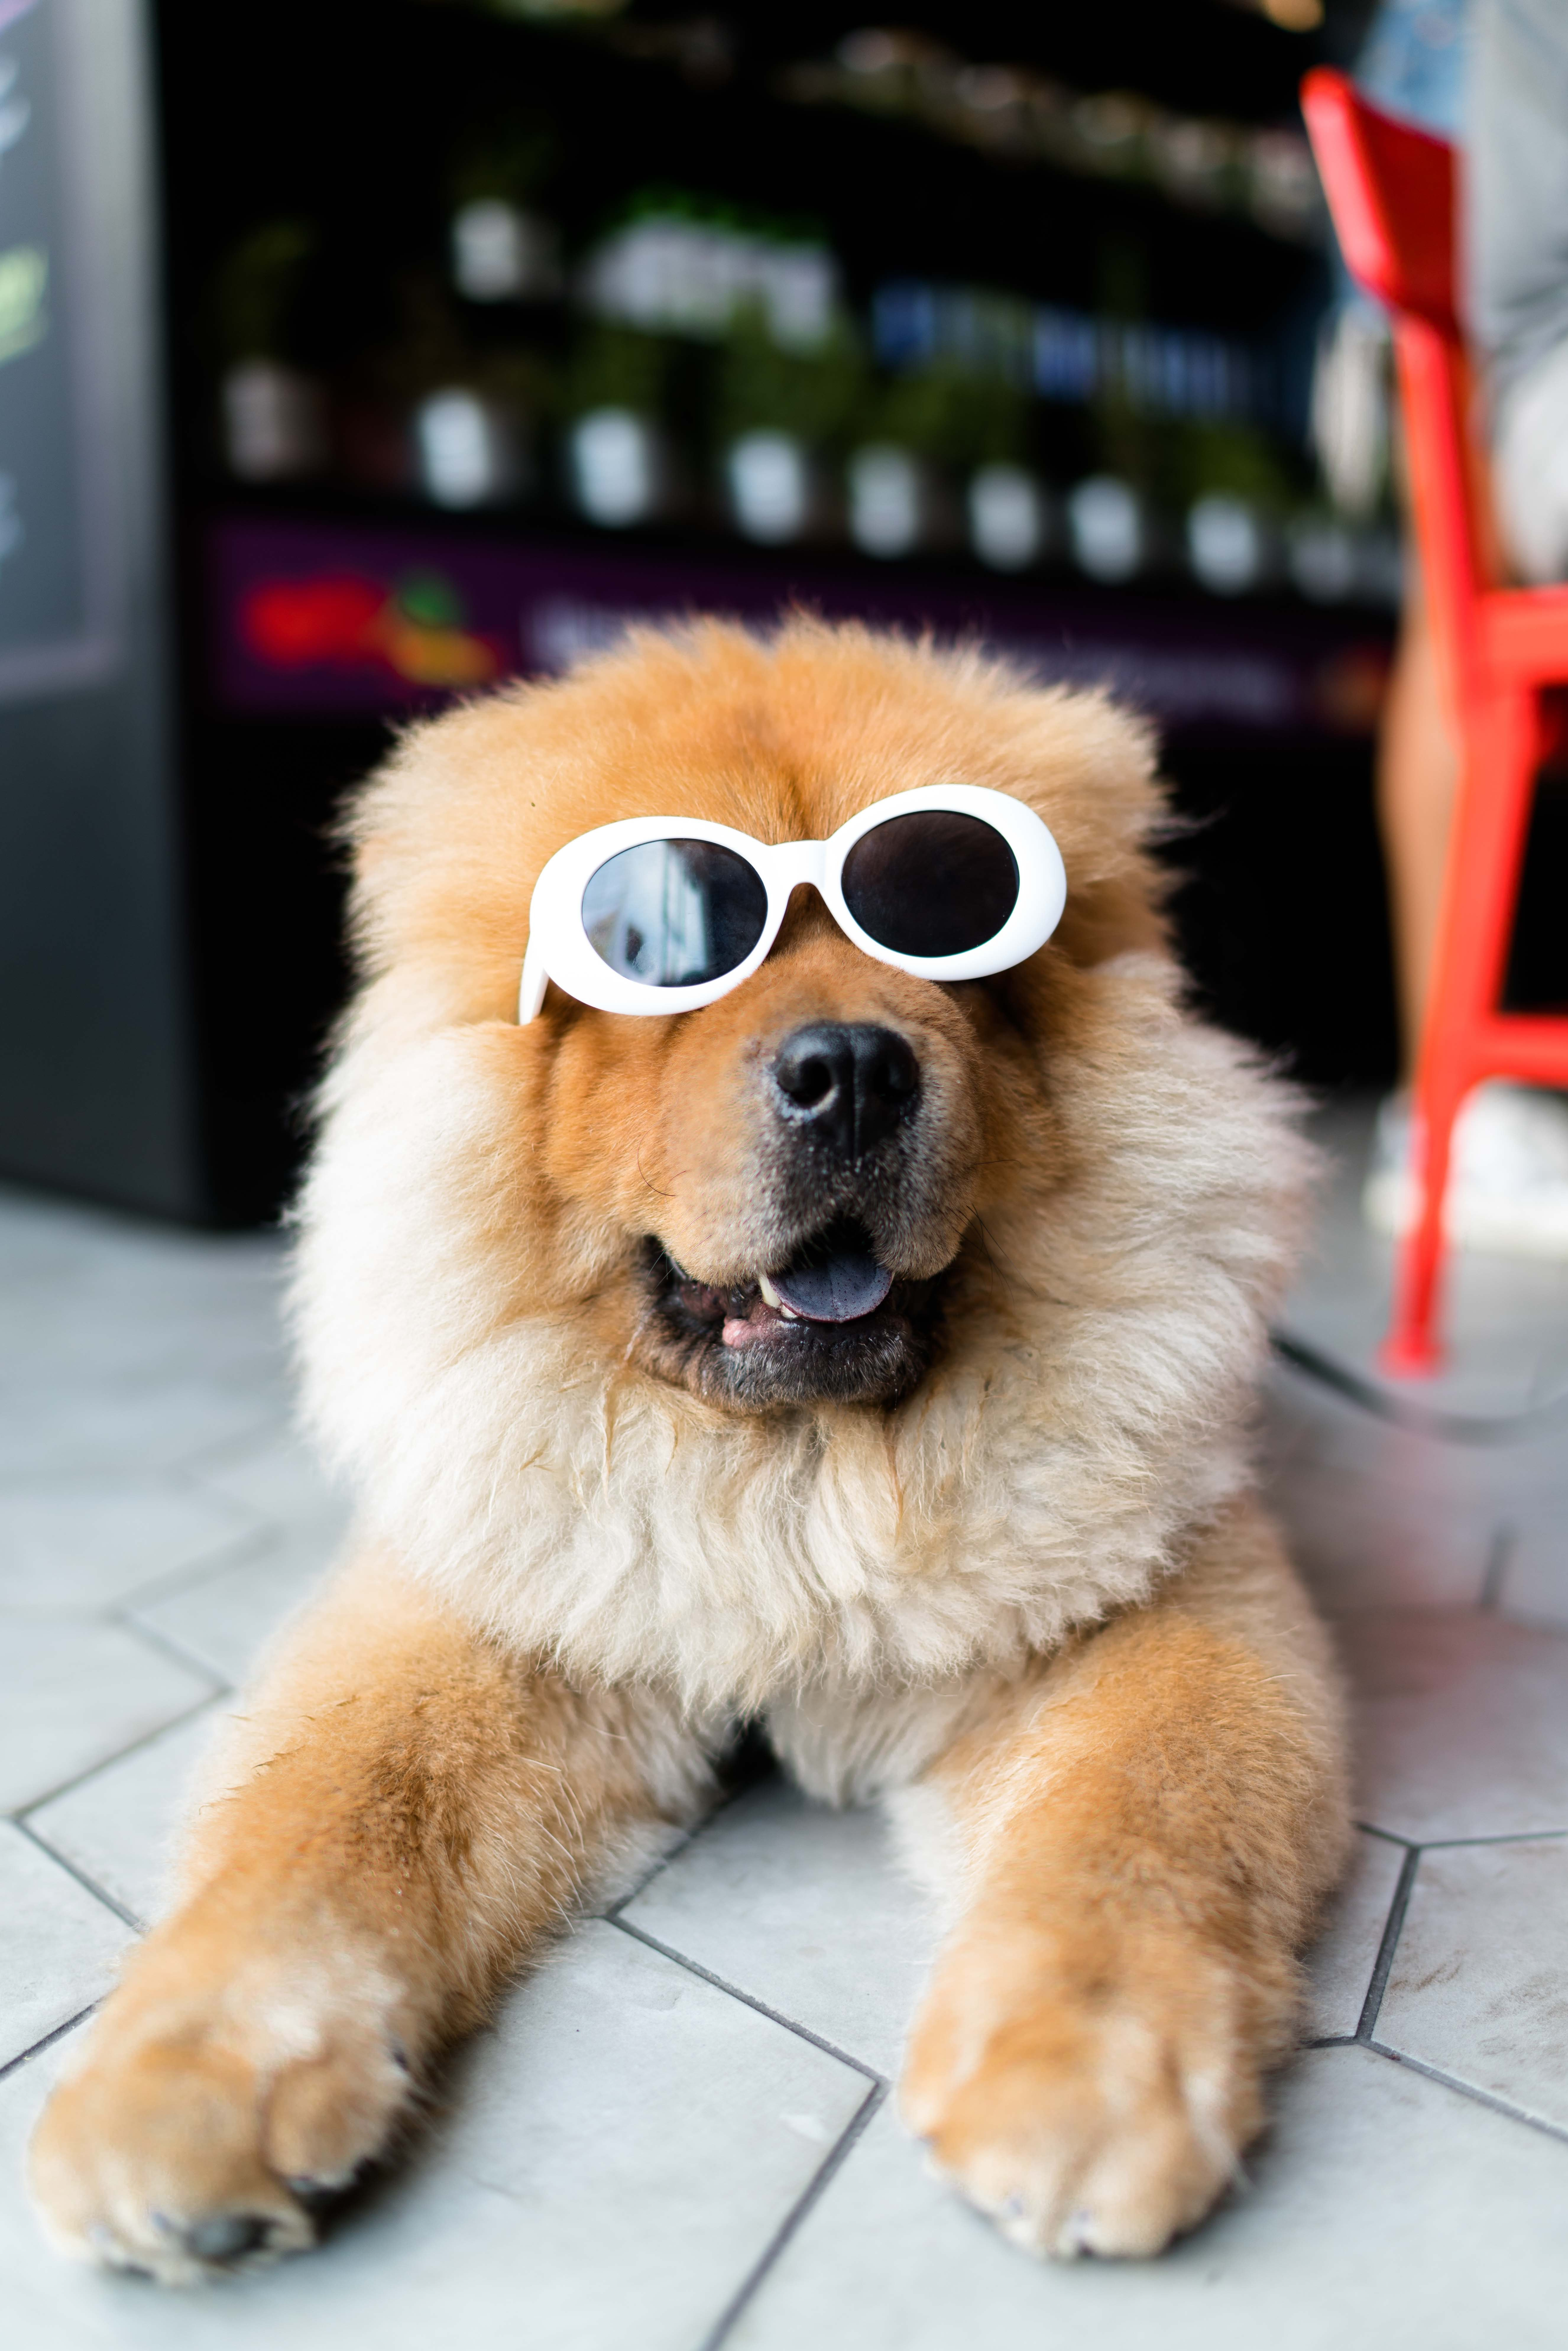 how to be an eco friendly dog owner - dog wearing sunglasses